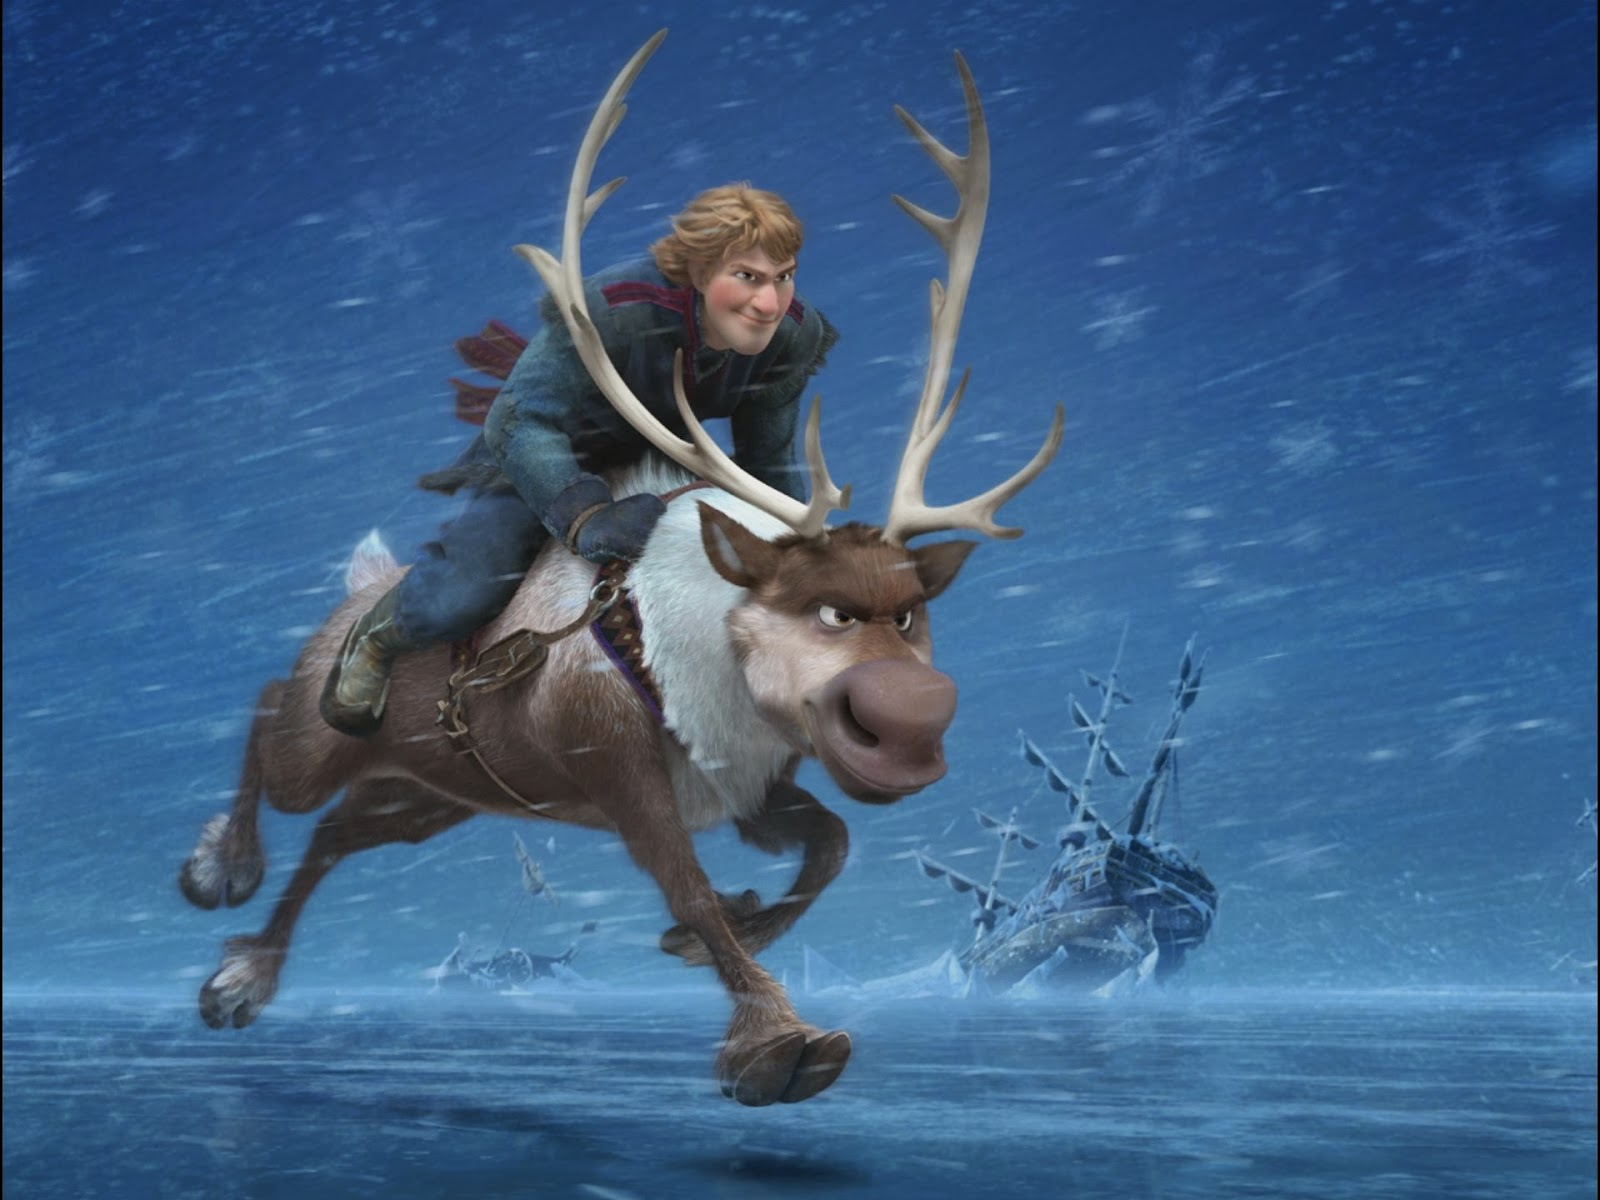 kristoff frozen photo - photo #34